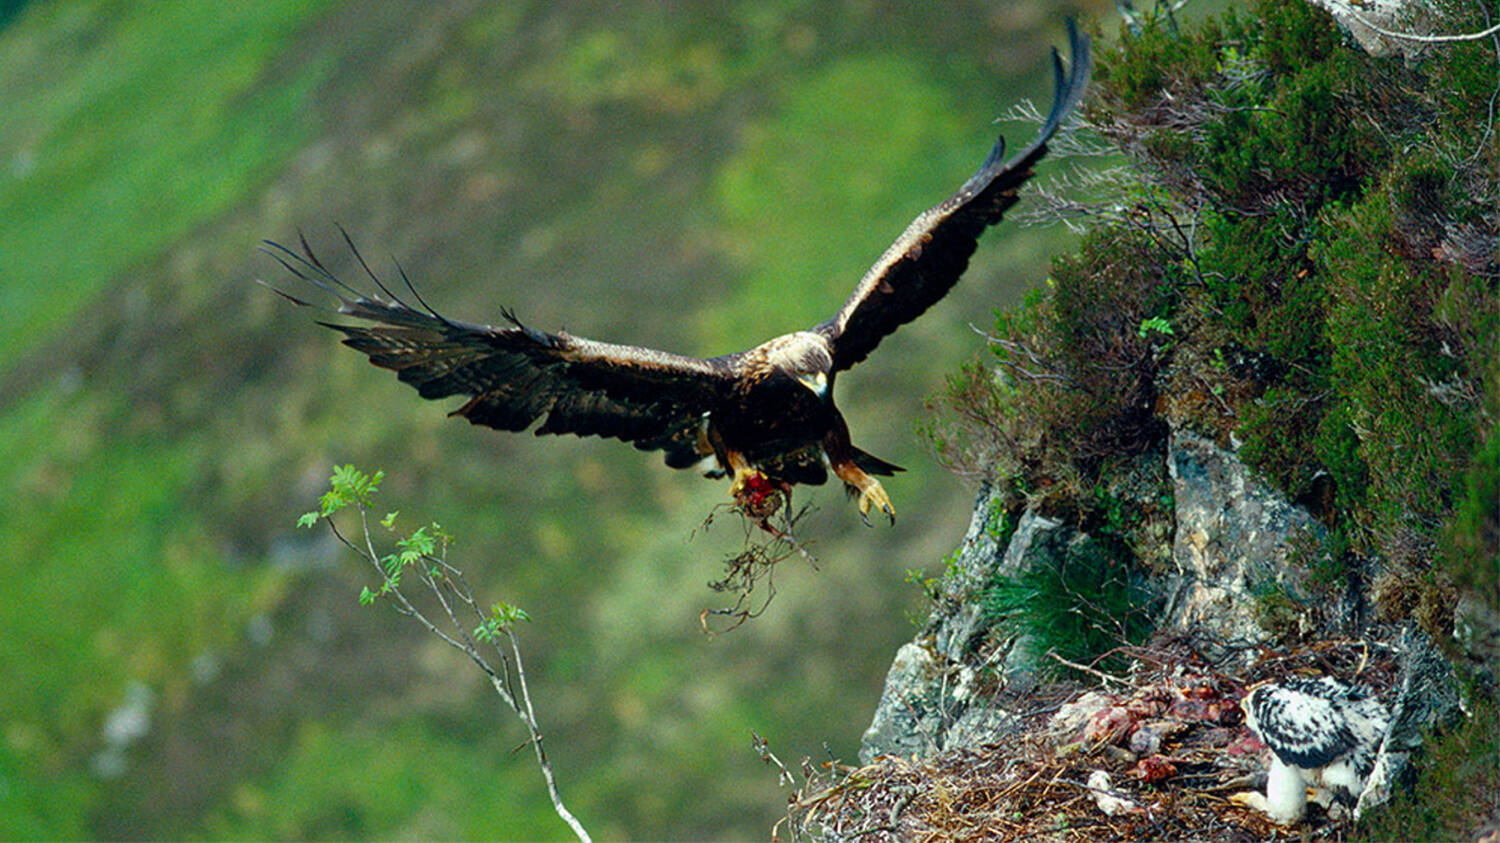 A golden eagle comes in to land on its nest, on a mountainside. A chick is in the nest.